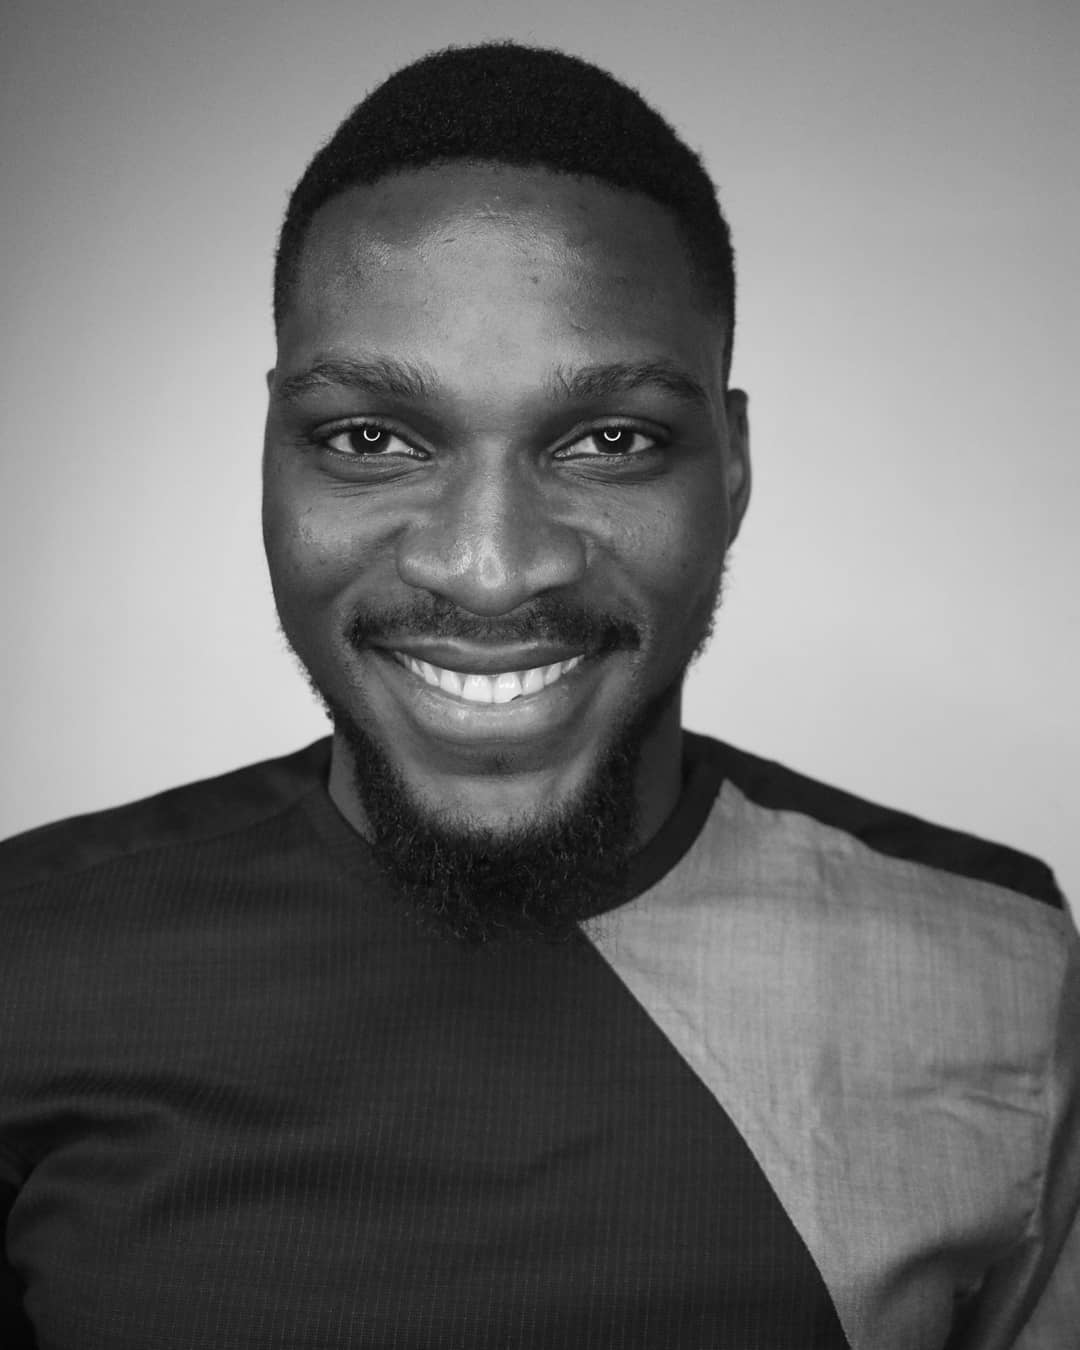 Photo of BBNaija: Tobi Bakre graduated at the age of 18, he's really 23 years old